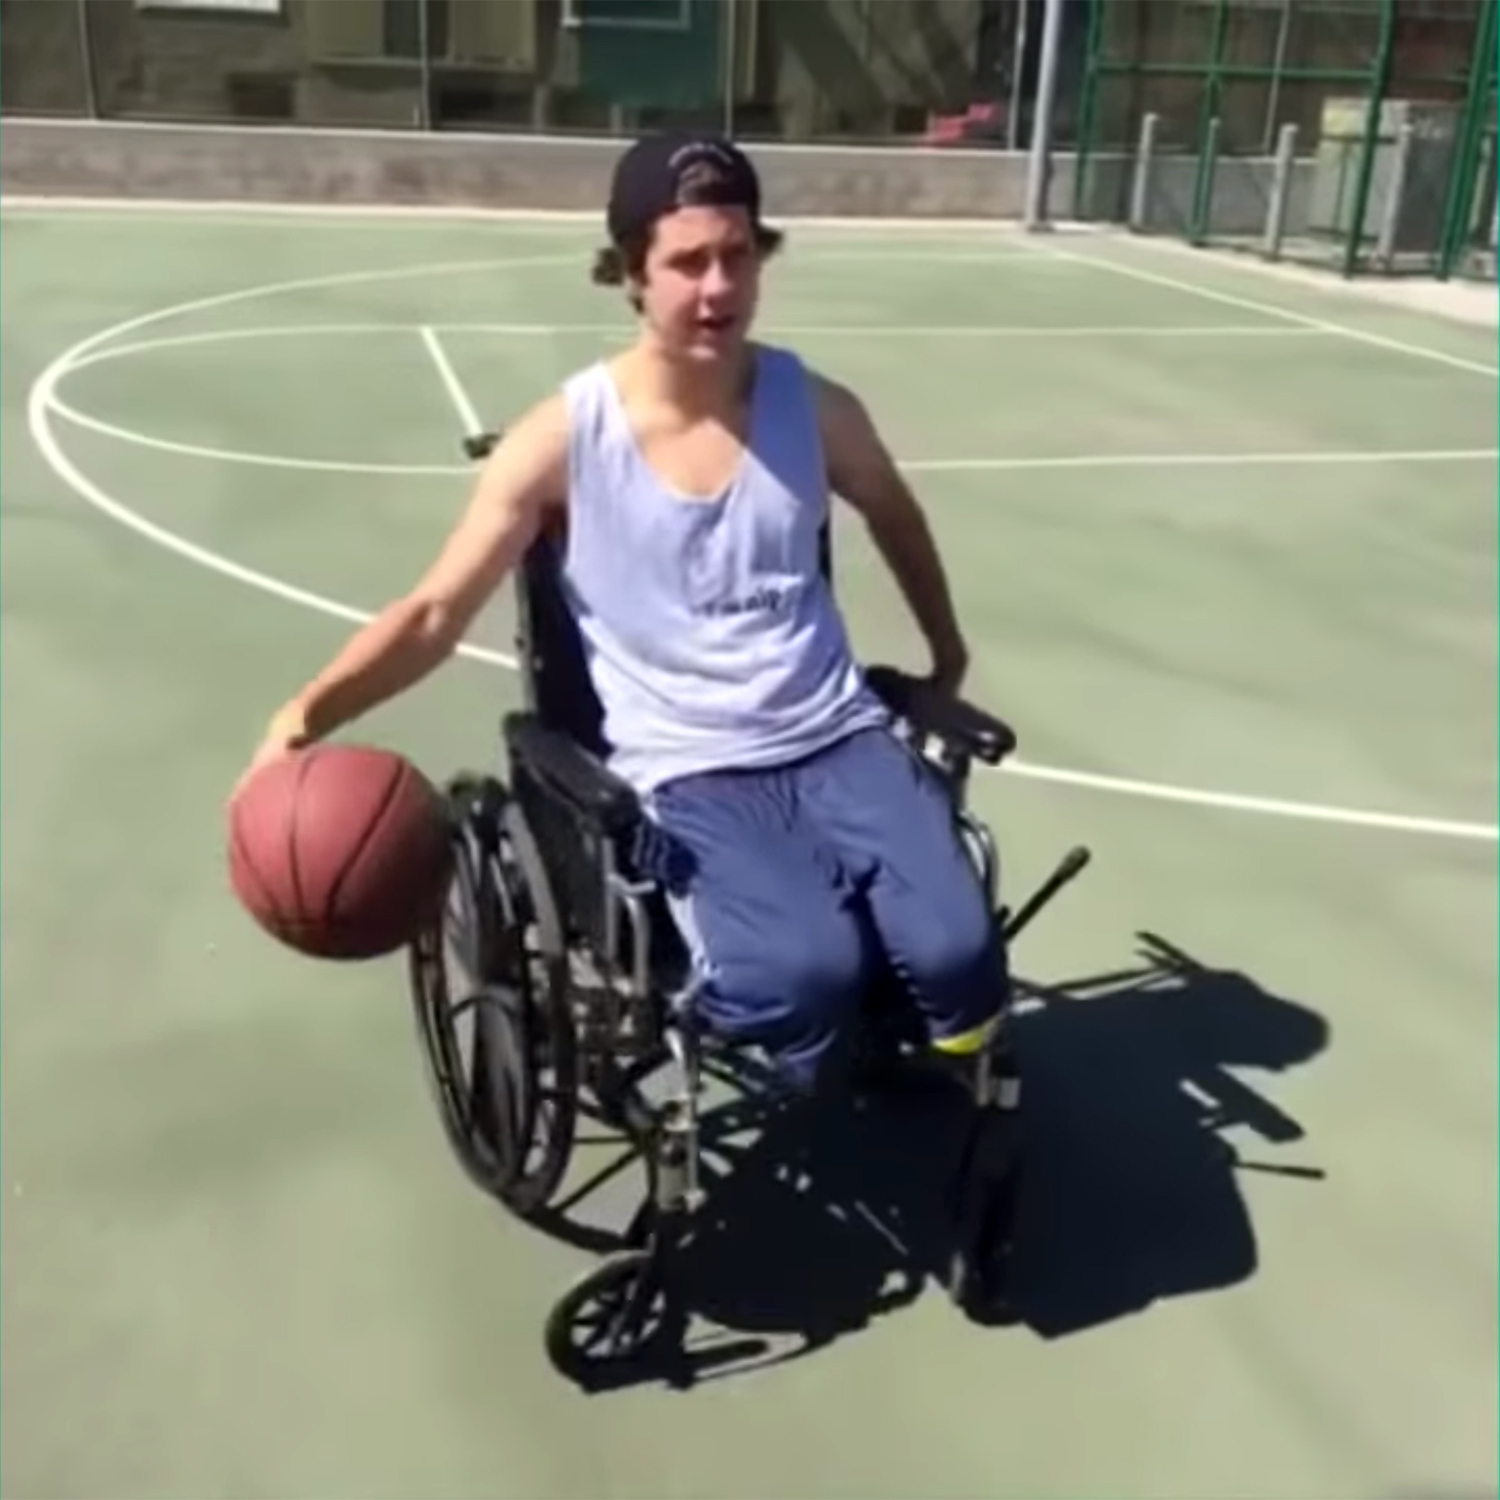 Dobrik in one of his early Vine videos circa 2015, pretending to be disabled